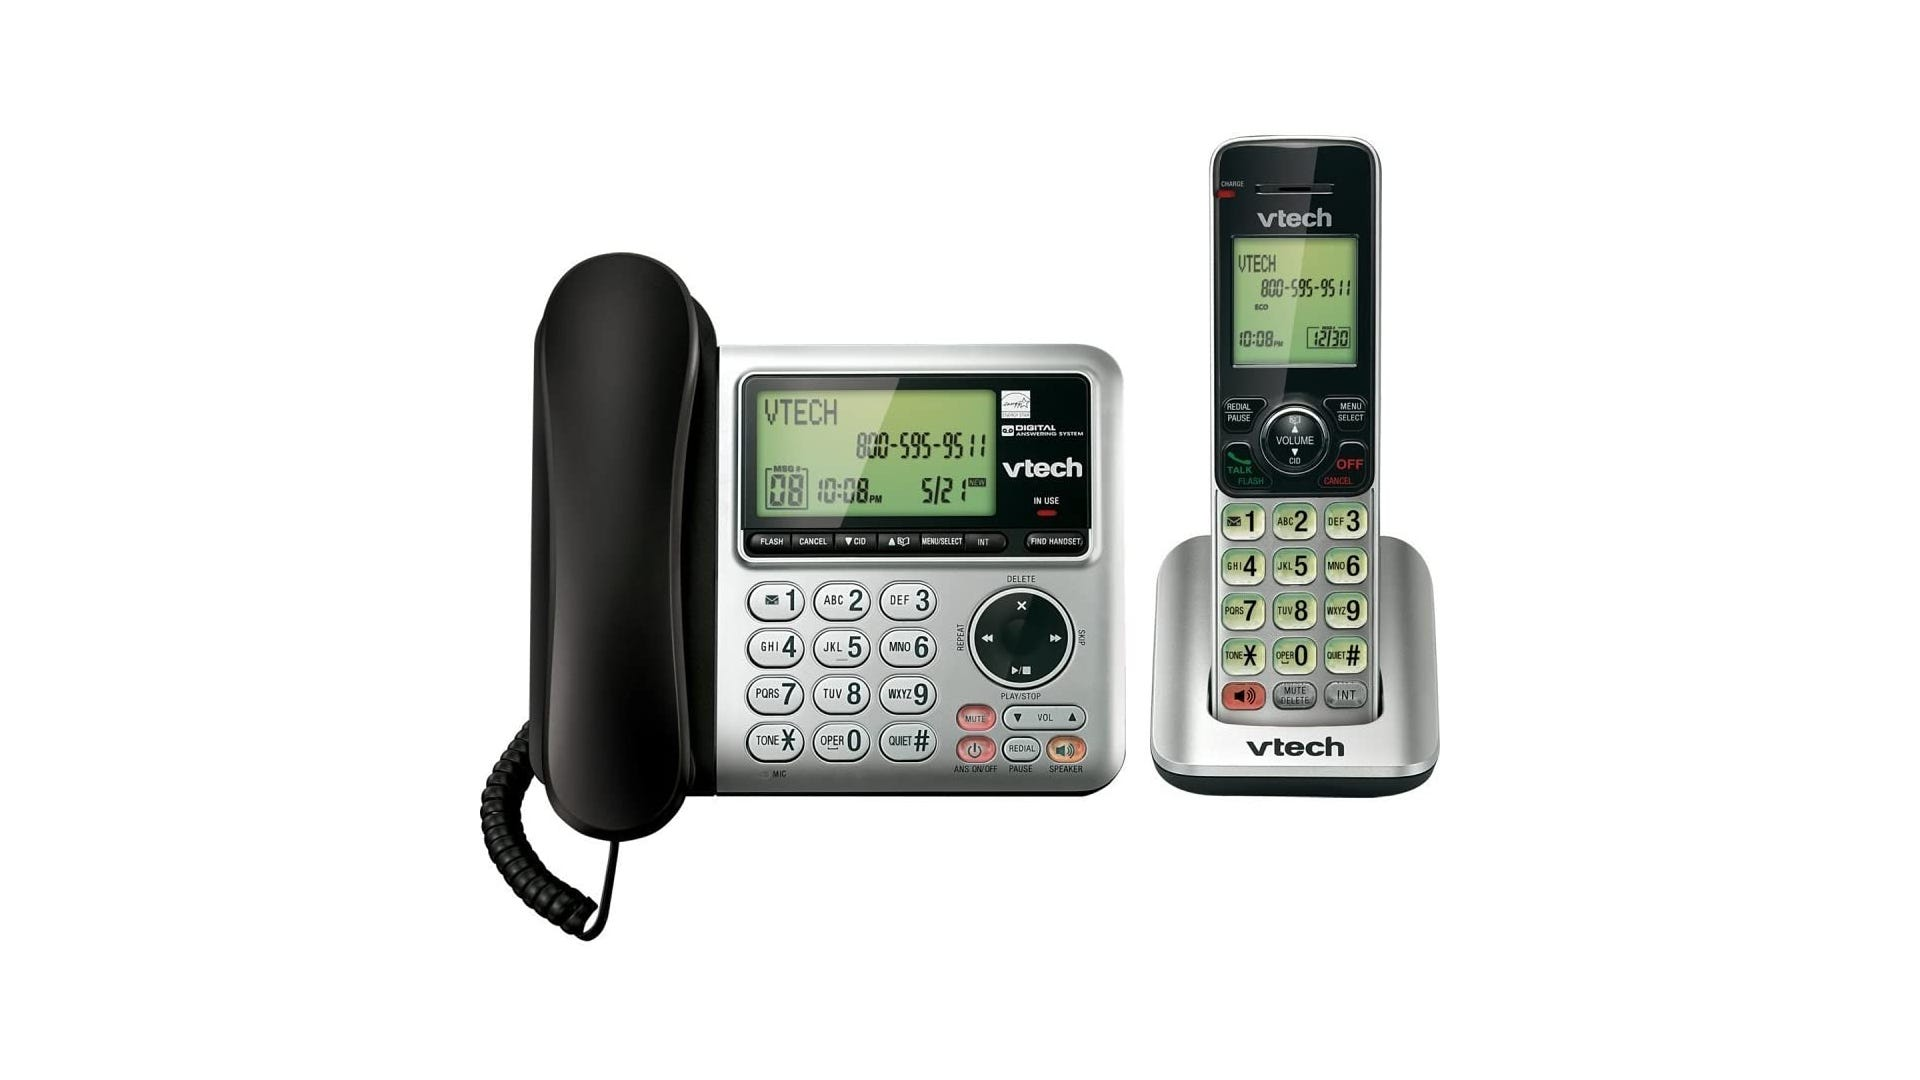 black corded phone on a silver dial pad next to a matching cordless phone